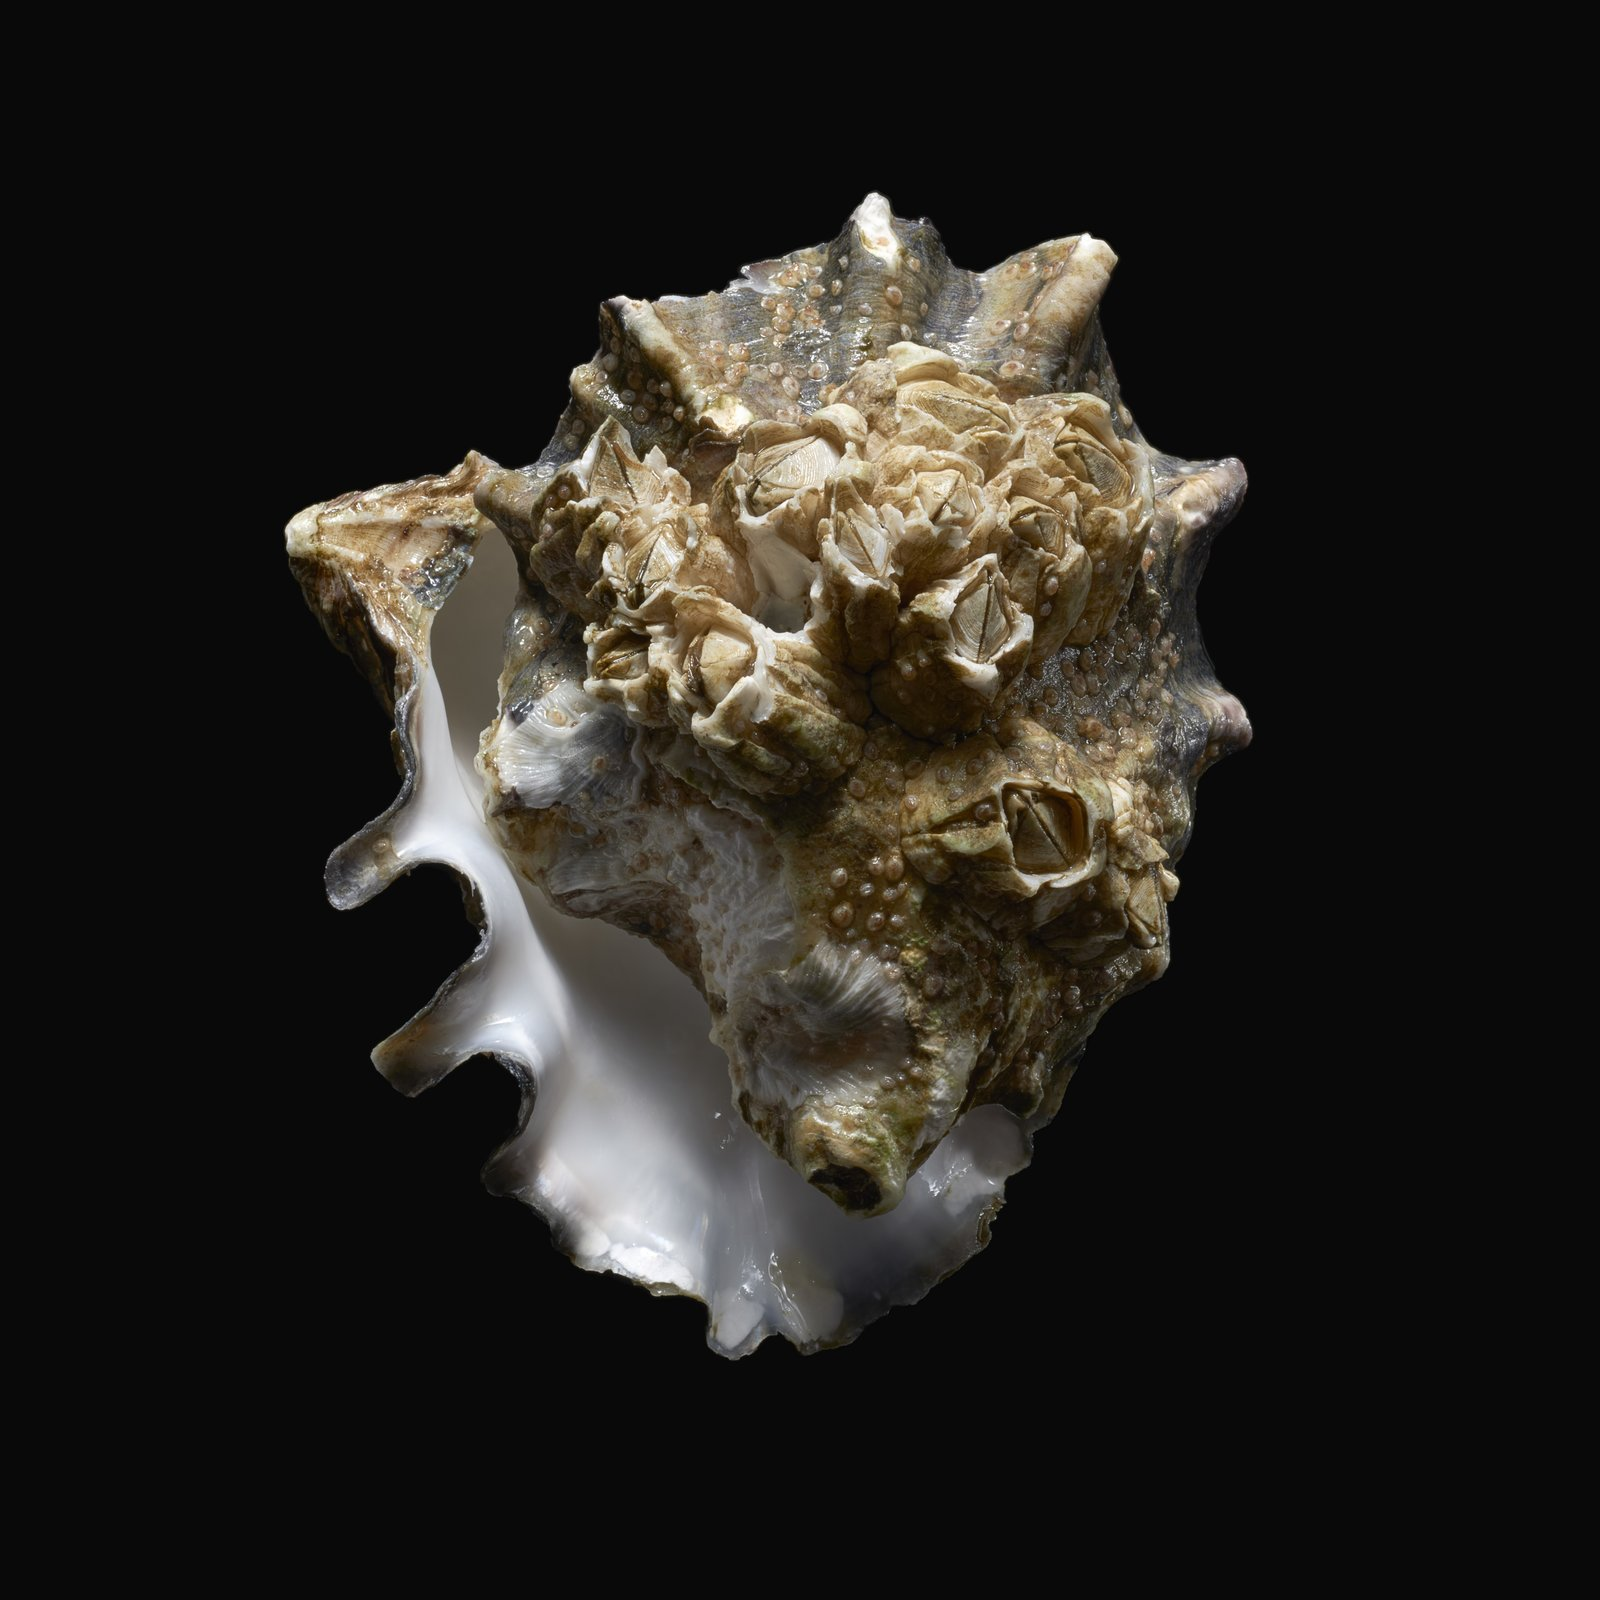 believe-it-or-not-this-flapjack-point-oyster-shell-may-have-a-future-in-construction-find-out-how-in-dwells-latest-rm-3-podcast-in-which-we-chart-the-role-of-mollusk-shells-in-architecture-download-it-wherever-you-get-your-podcasts.jpg